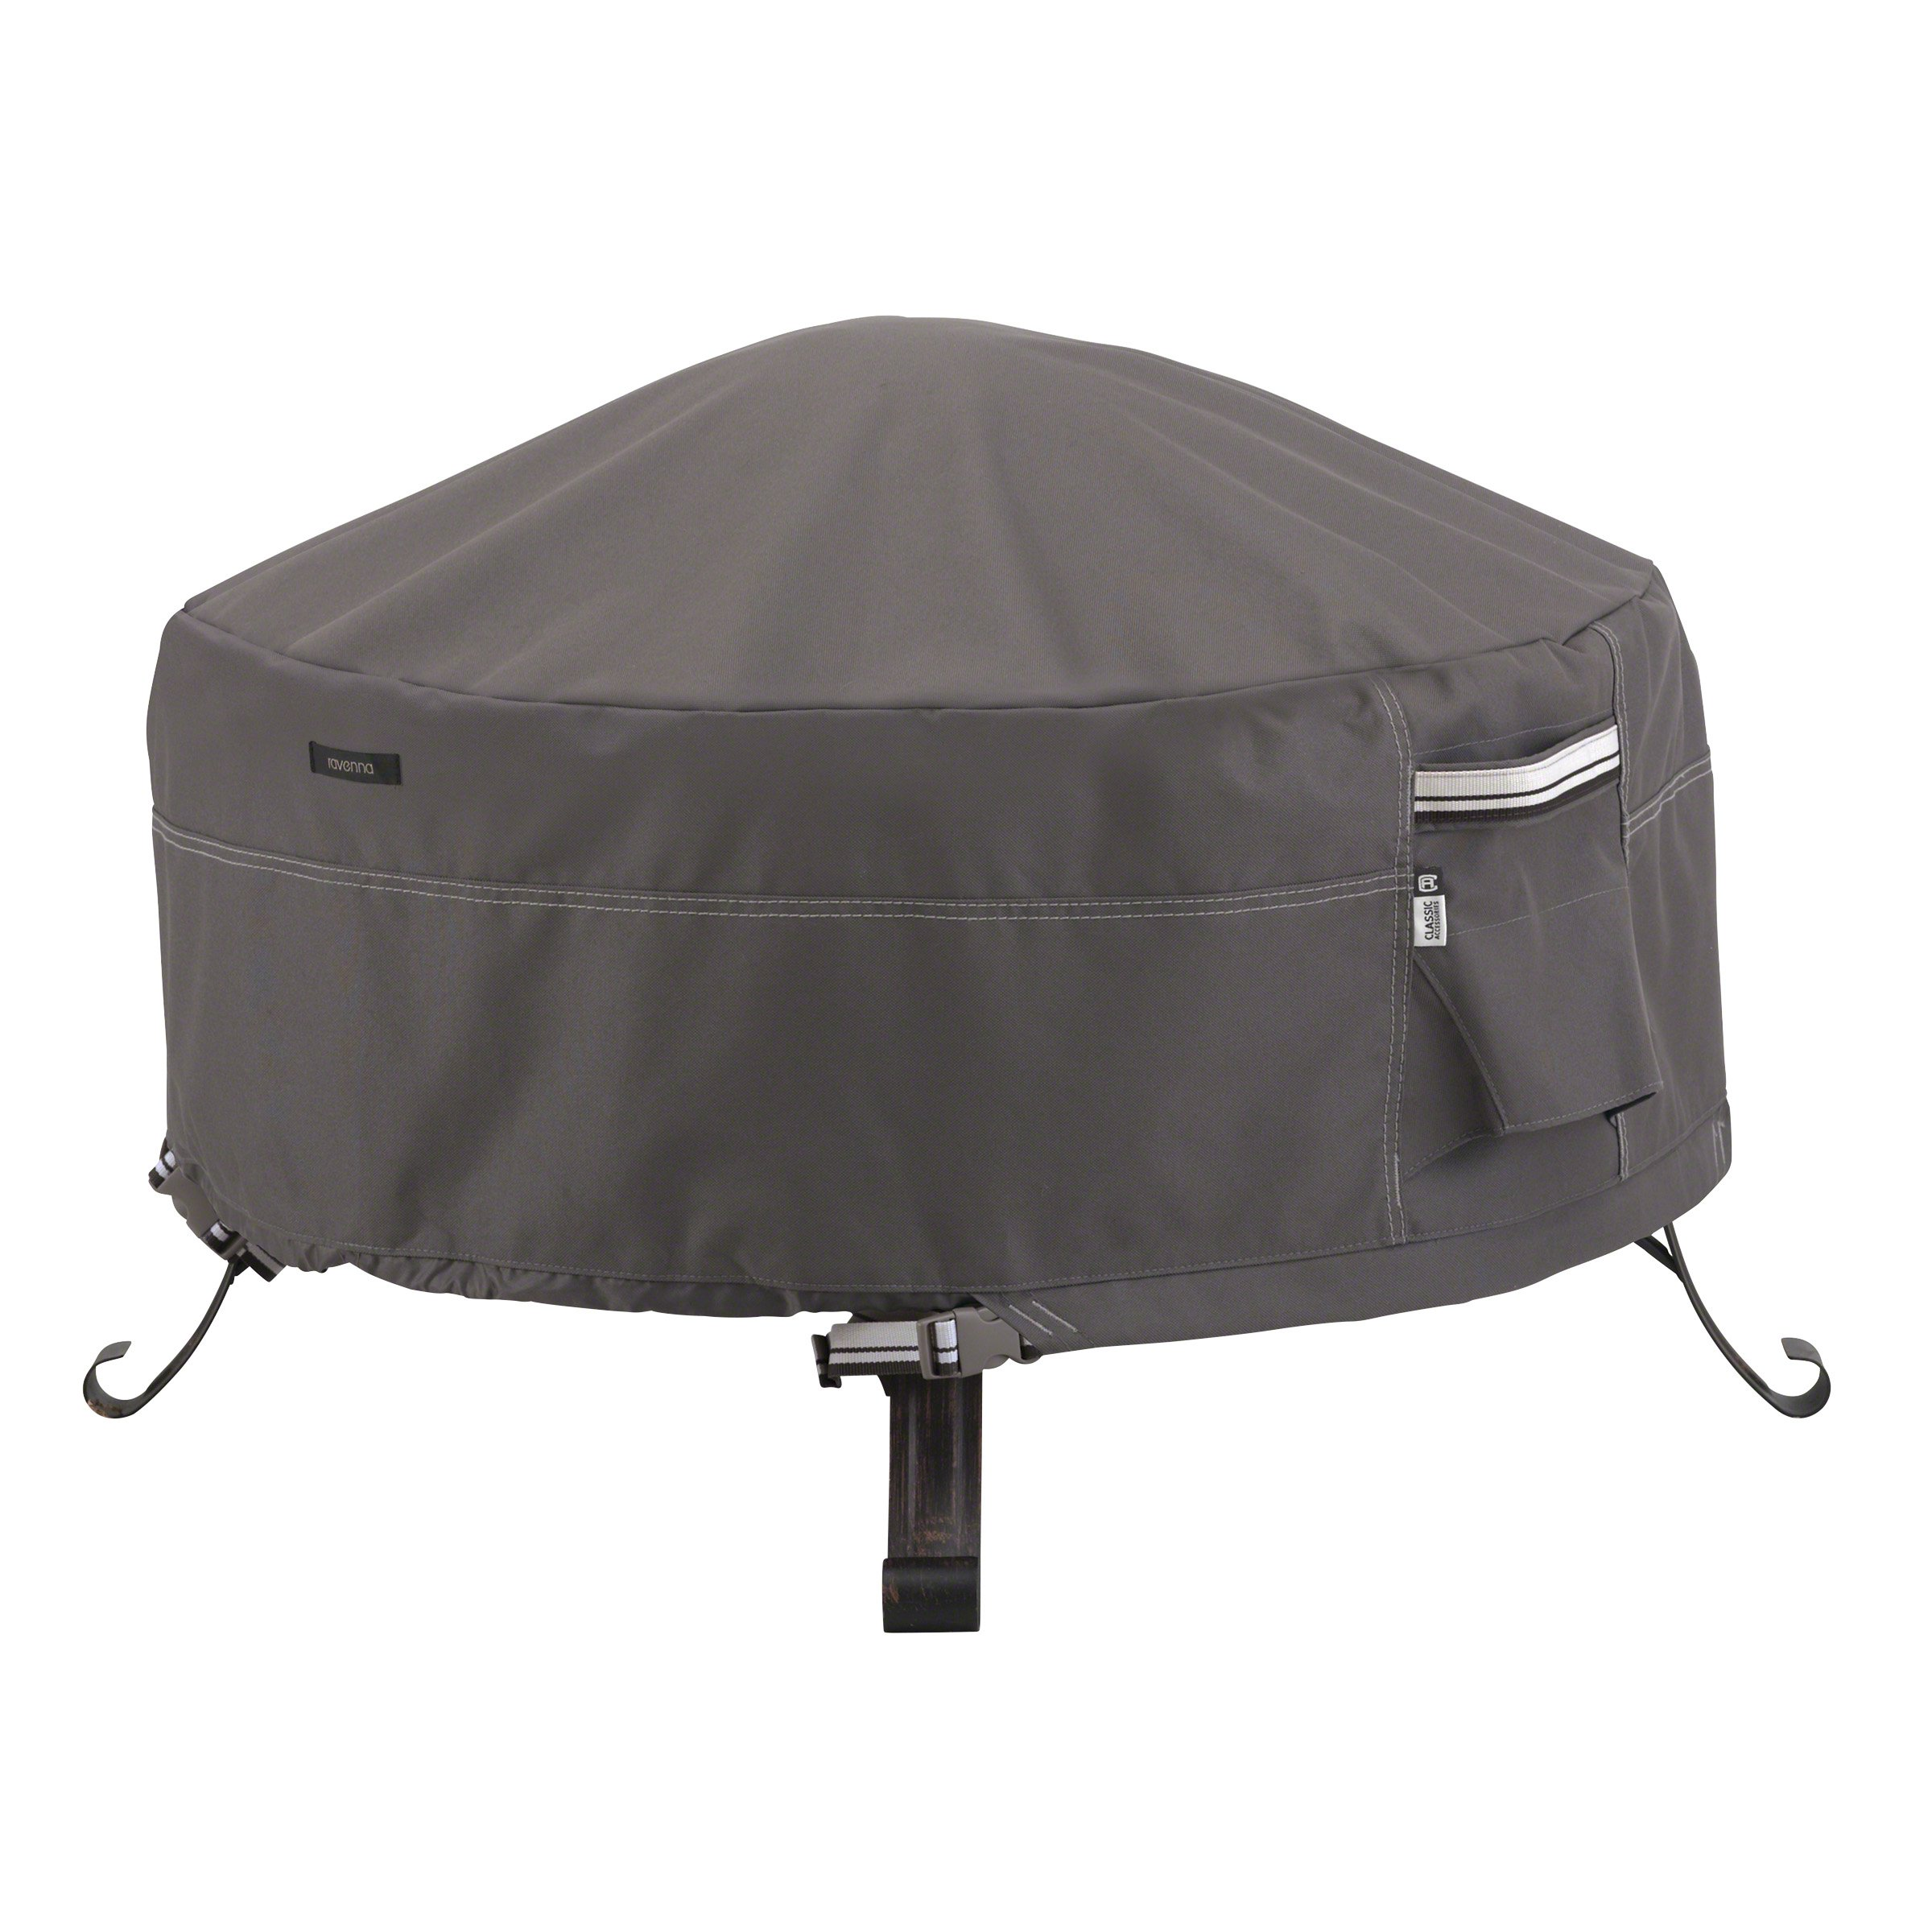 Classic Accessories Ravenna Full Coverage Round Fire Pit Cover - Premium Outdoor Cover with Durable and Water Resistant Fabric, Small (55-484-015101-EC)